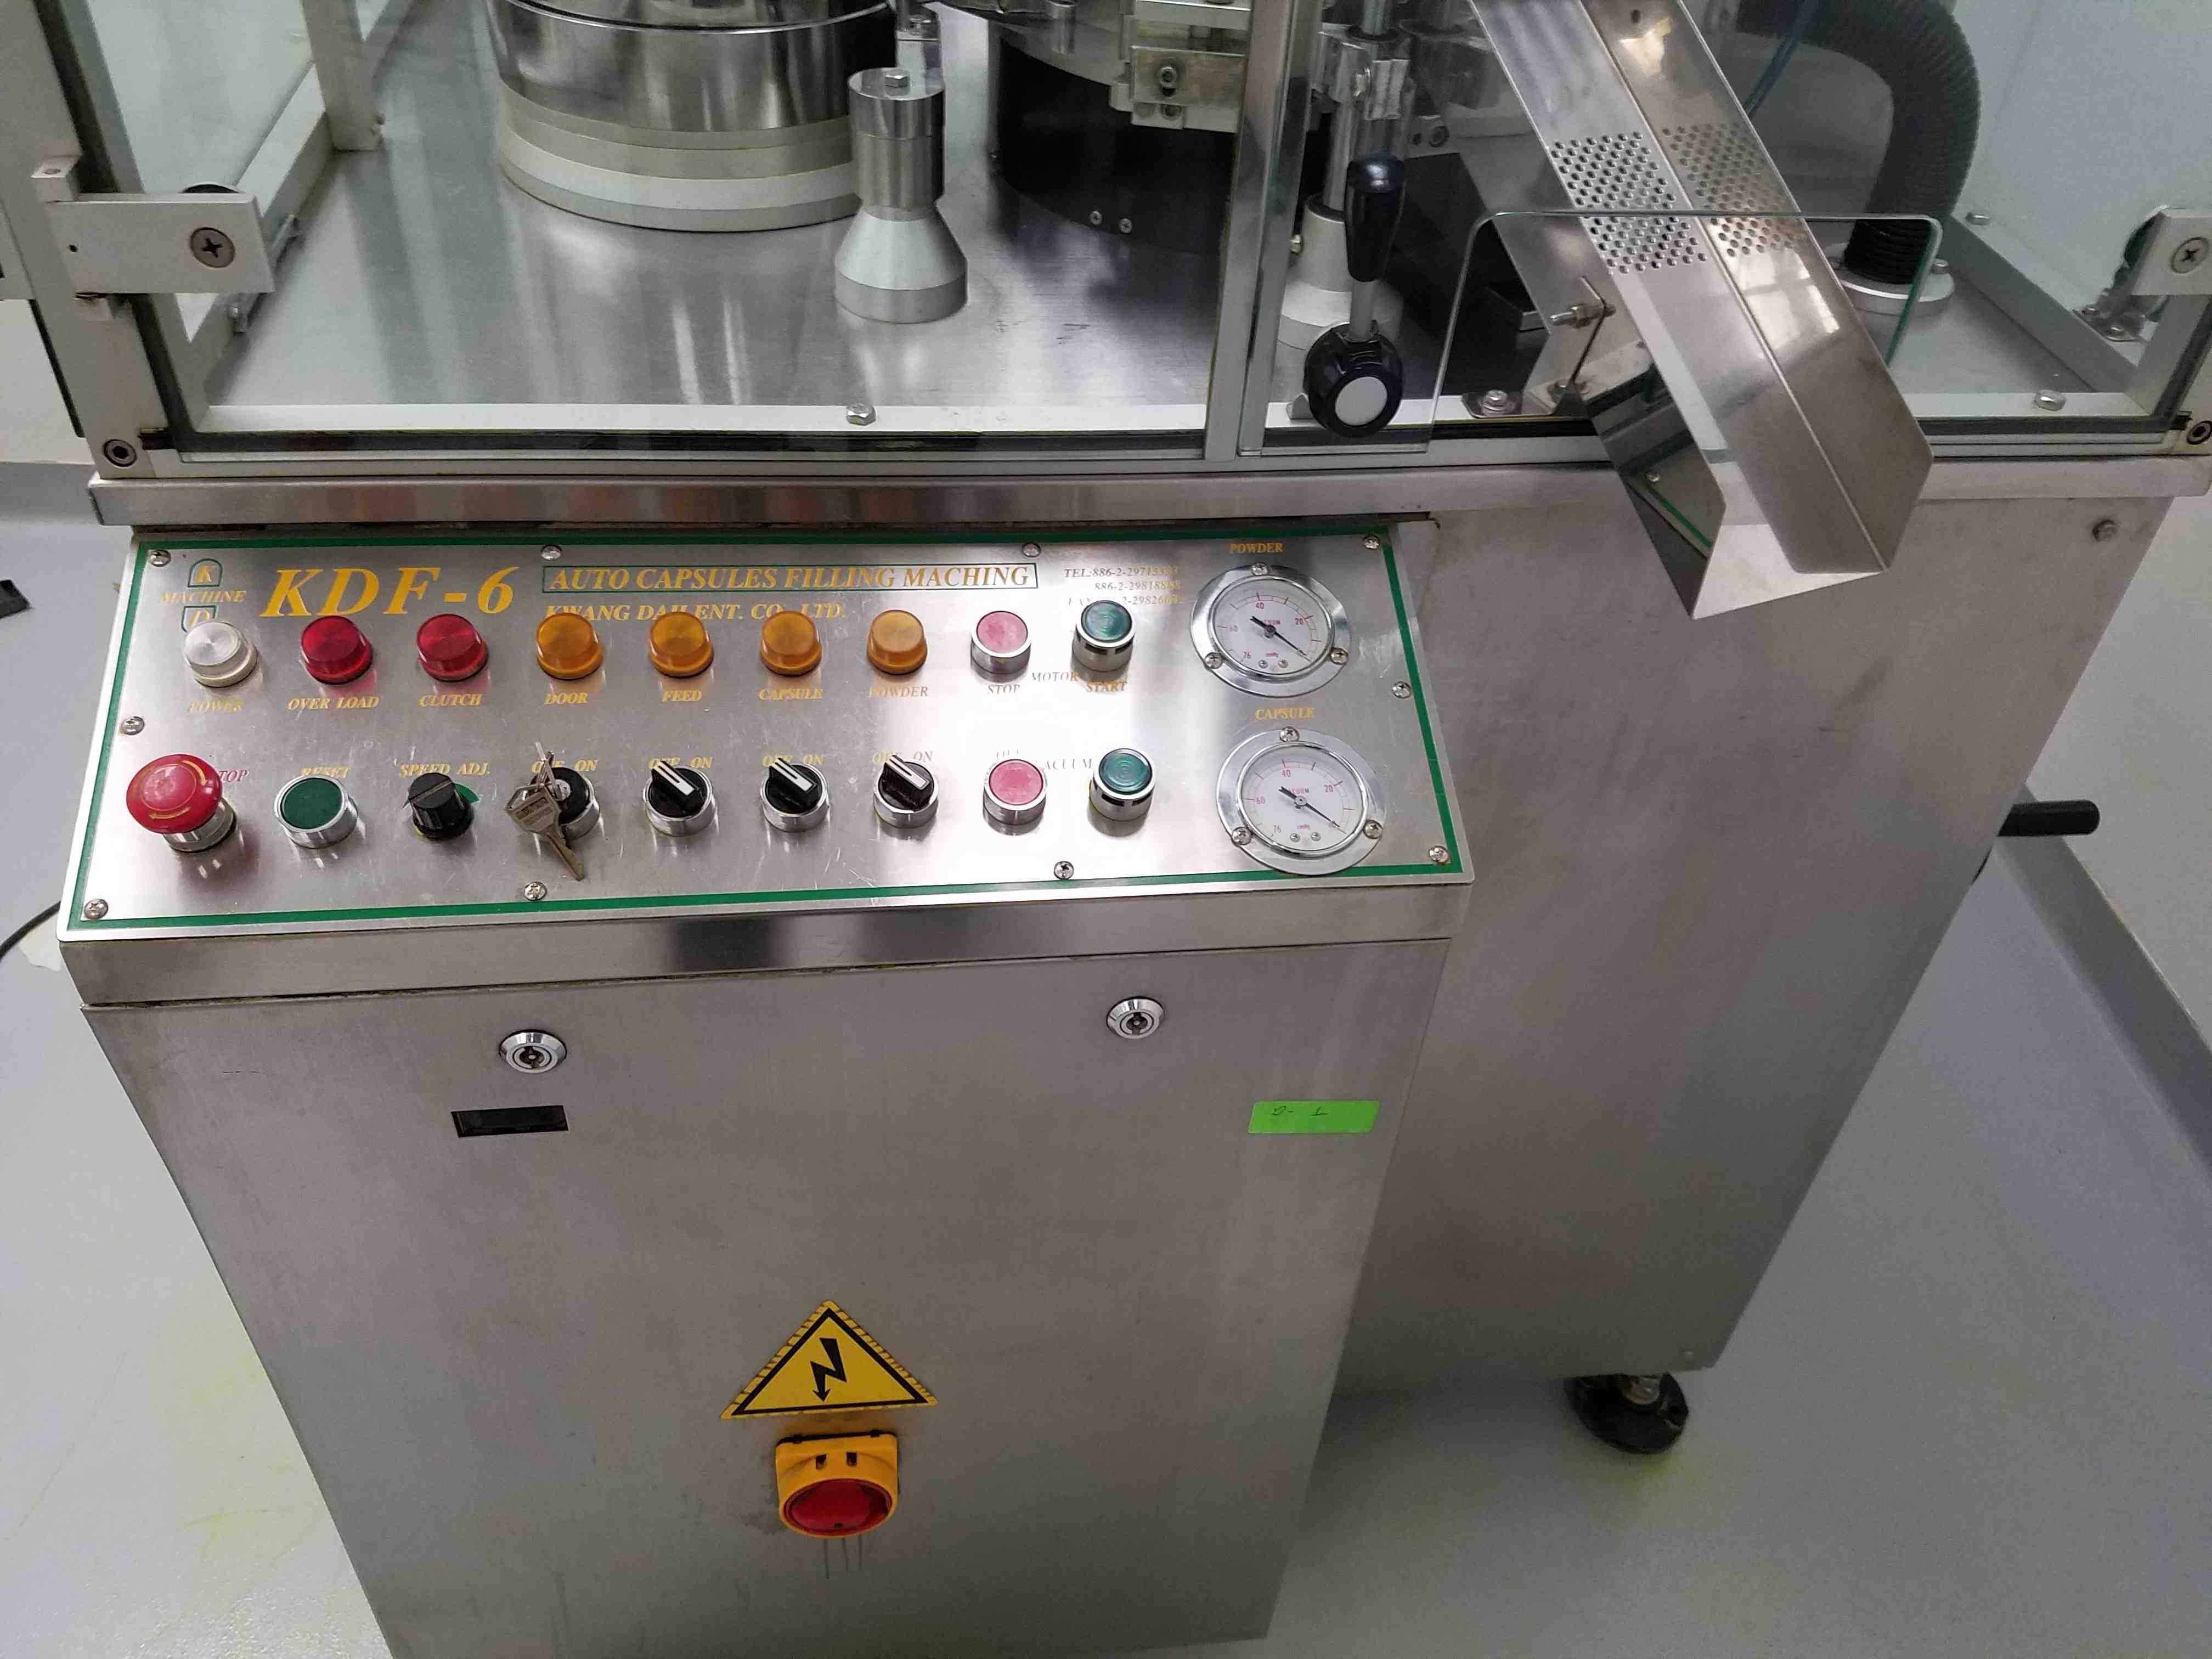 Fully automatic Kwang Dah encapsulator with 00, 0 and 1 change parts